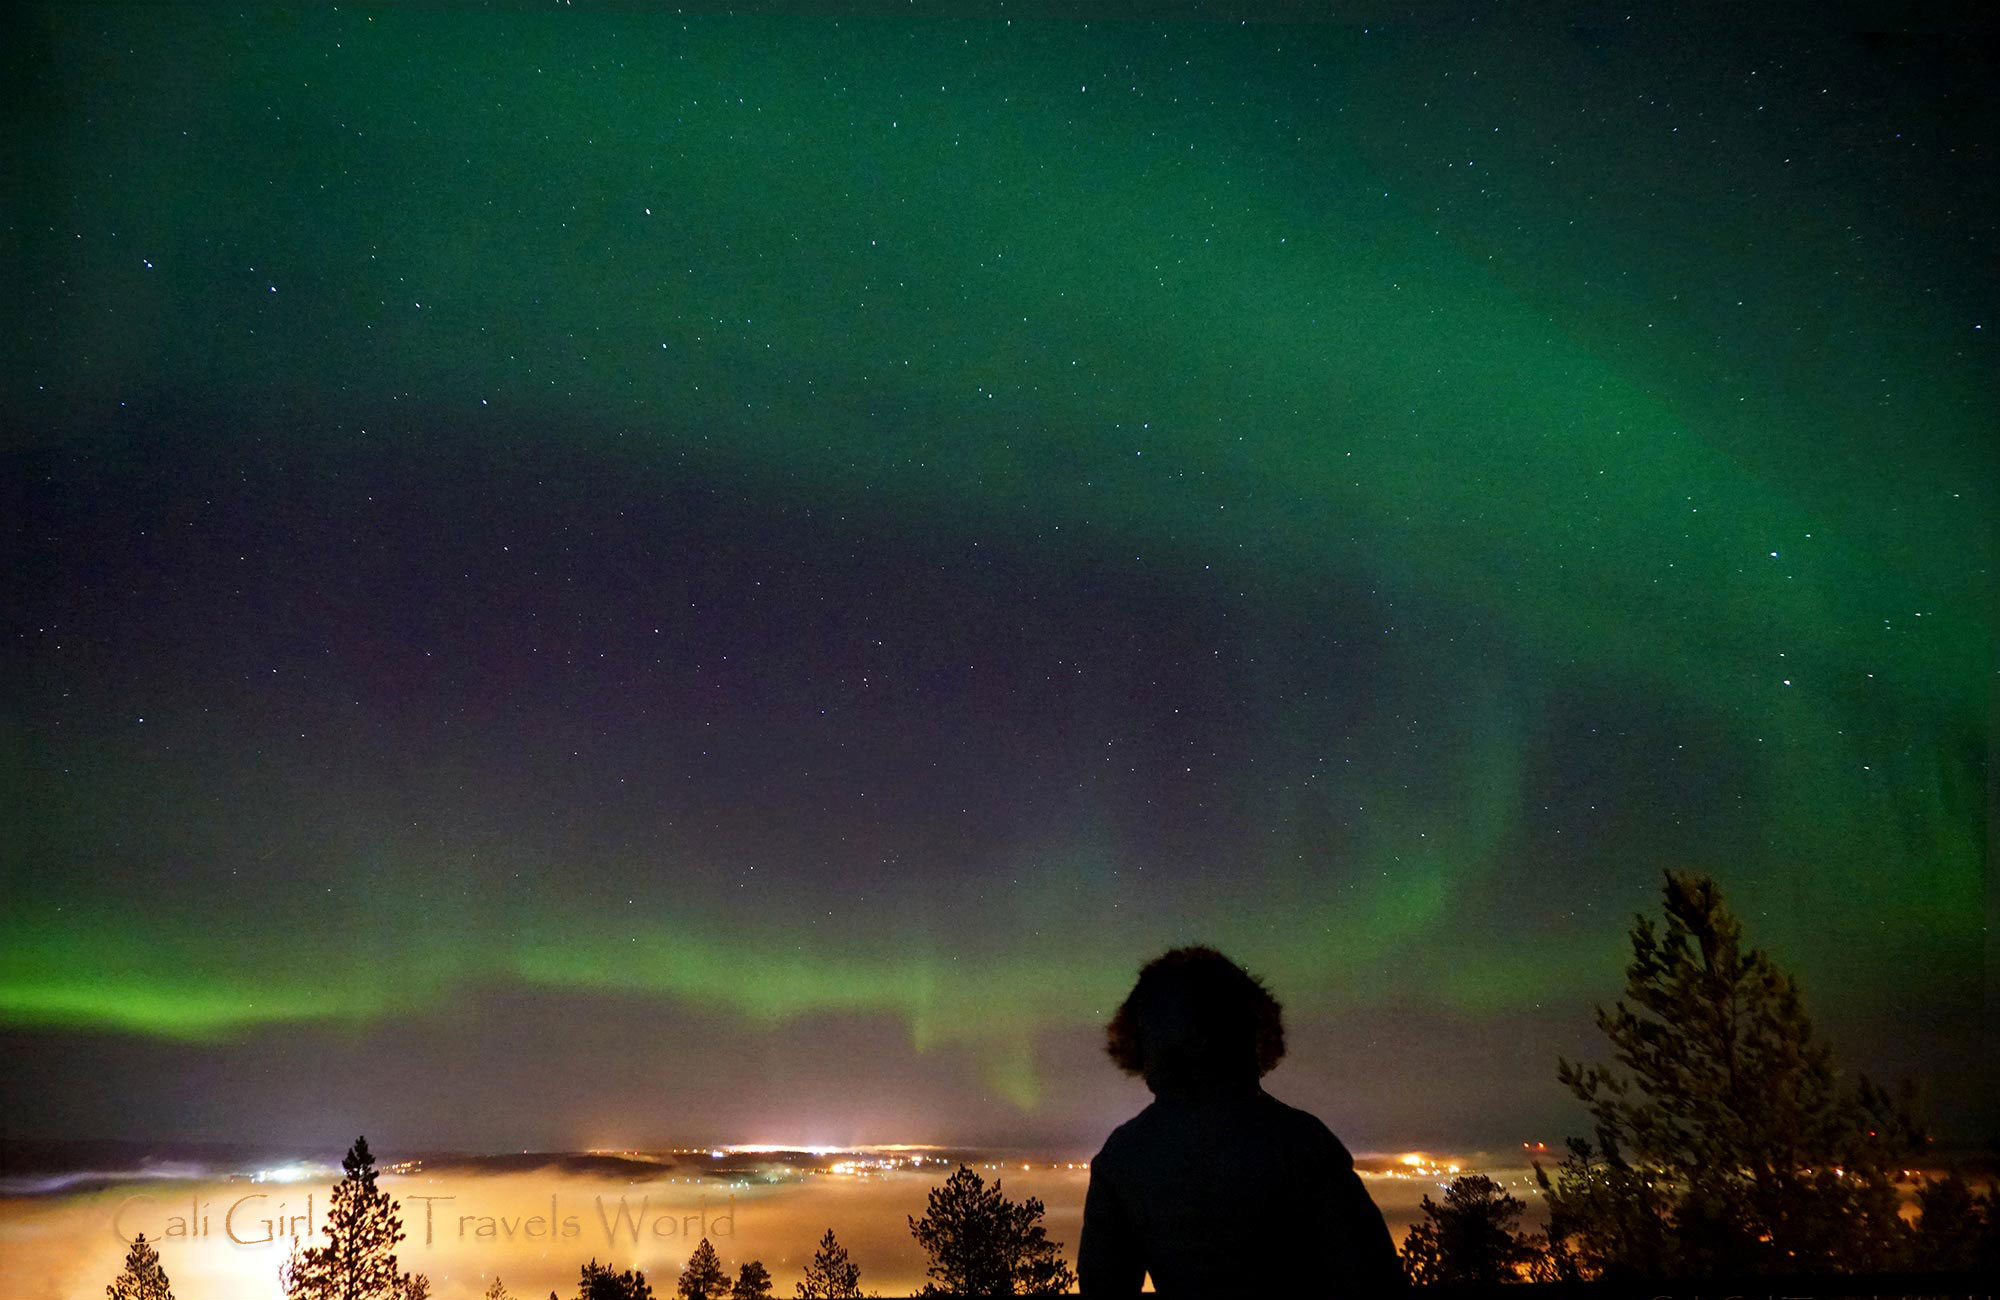 GoPro photo of the northern lights taken in the arctic circle, the aurora borealis is green.